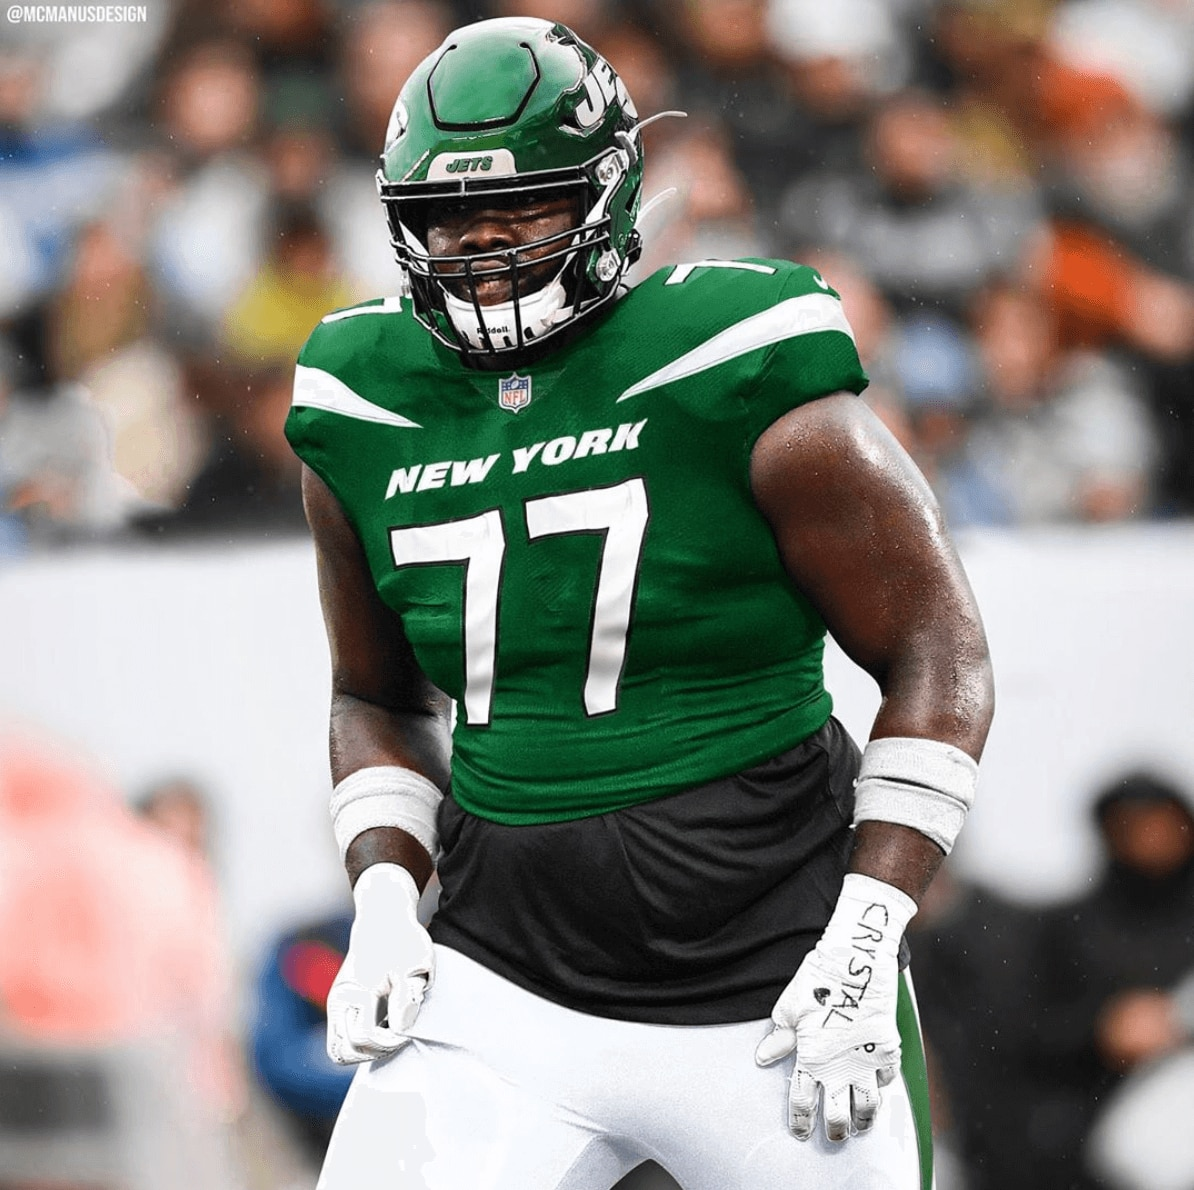 New York Jets, Mekhi Becton